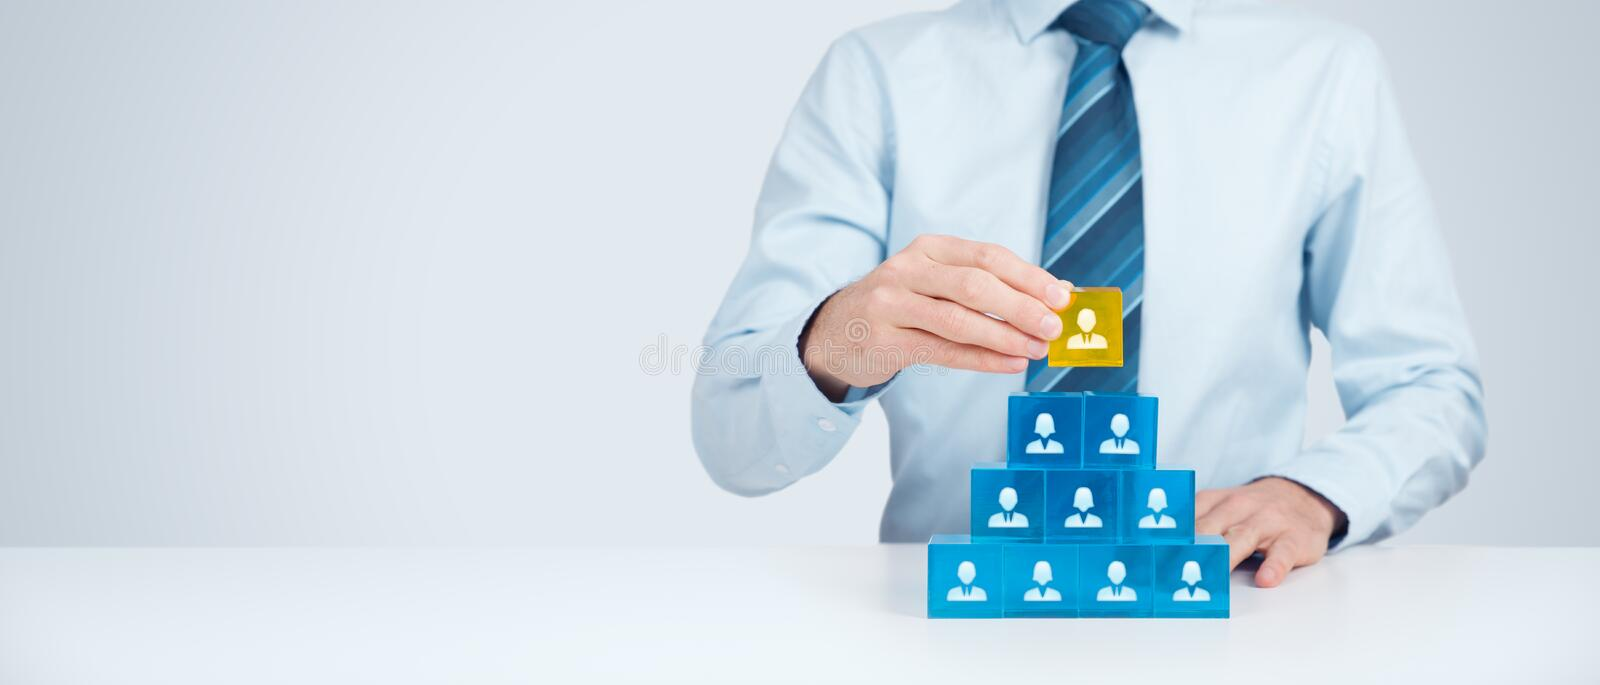 Human resources and CEO. Human resources and corporate hierarchy concept - recruiter complete team by one leader person (CEO) represented by gold cube and icon royalty free stock images